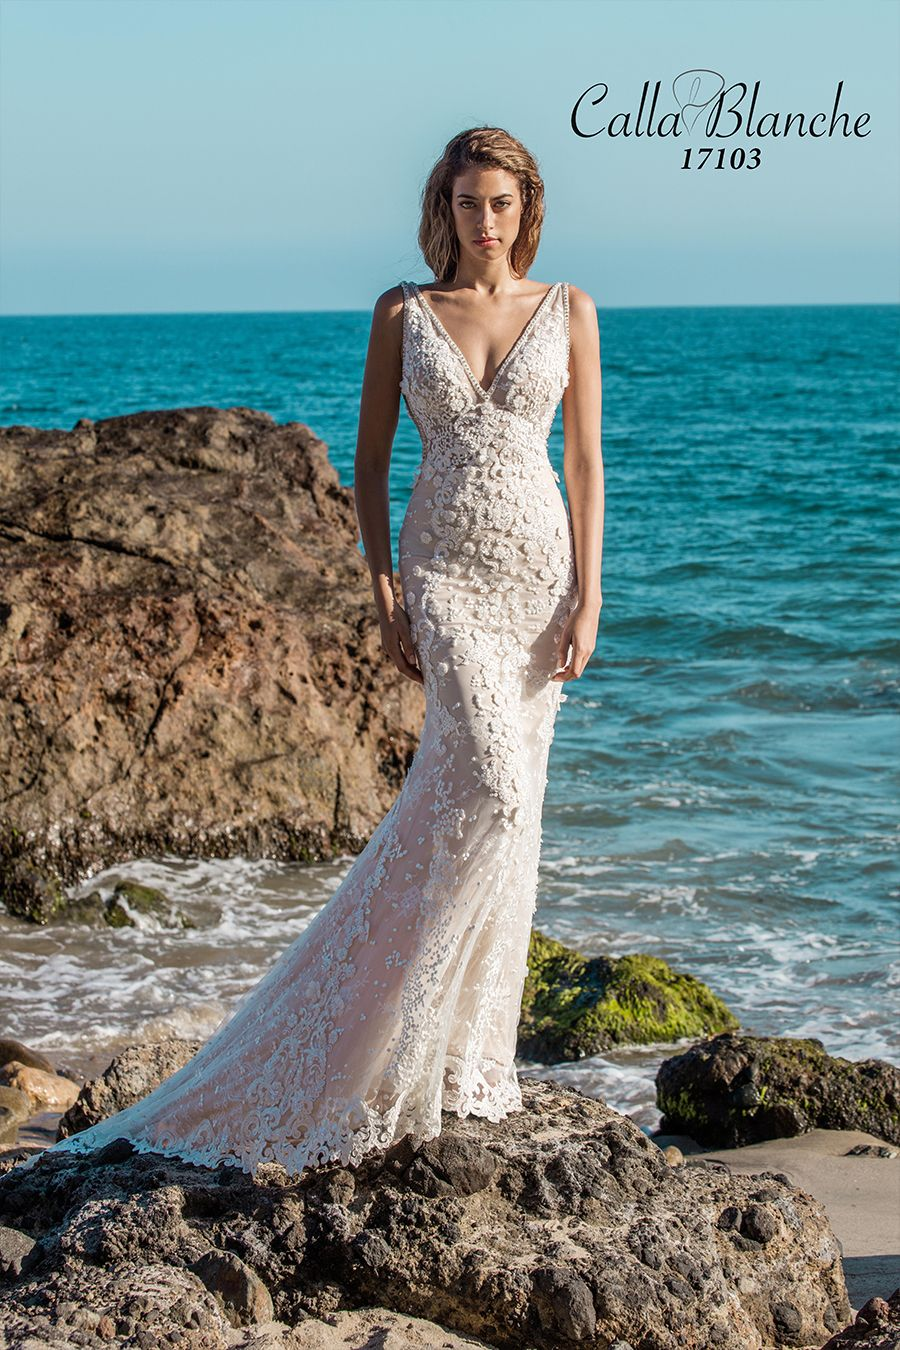 Reina wedding dress available in ivorynude ivorylight nude